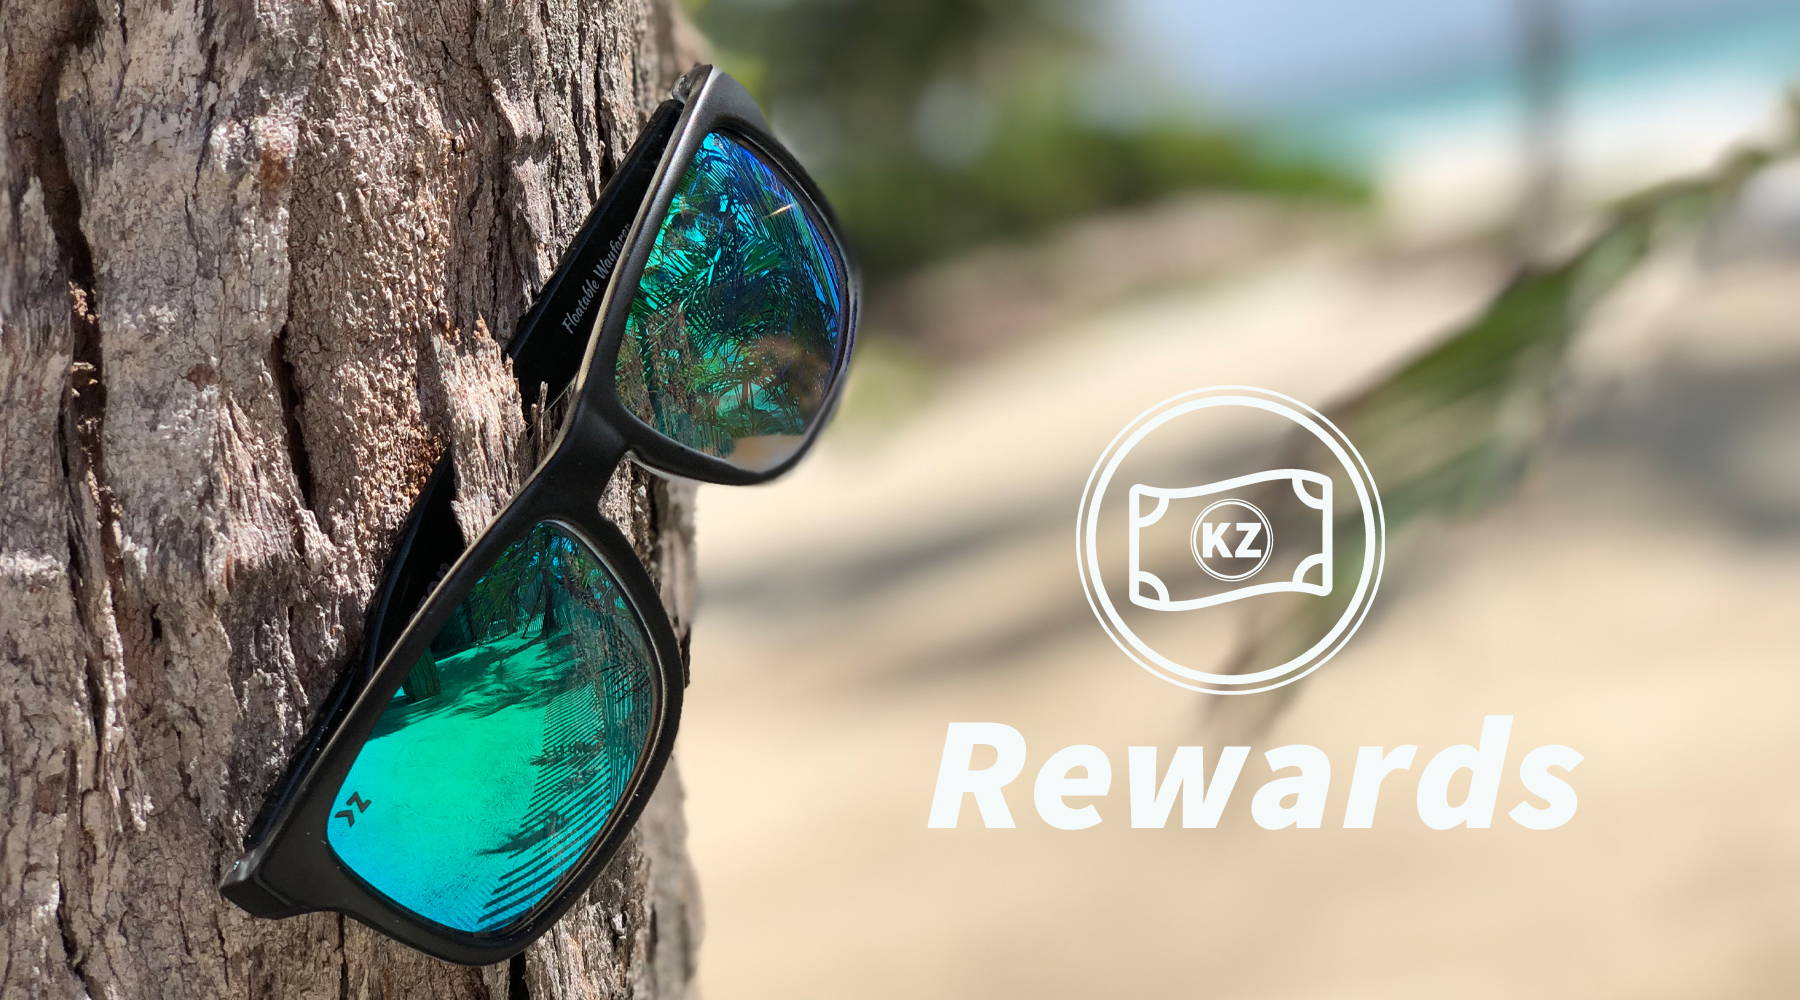 KZ Rewards. Earn rewards towards future discounts on Floating and aviator sunglasses